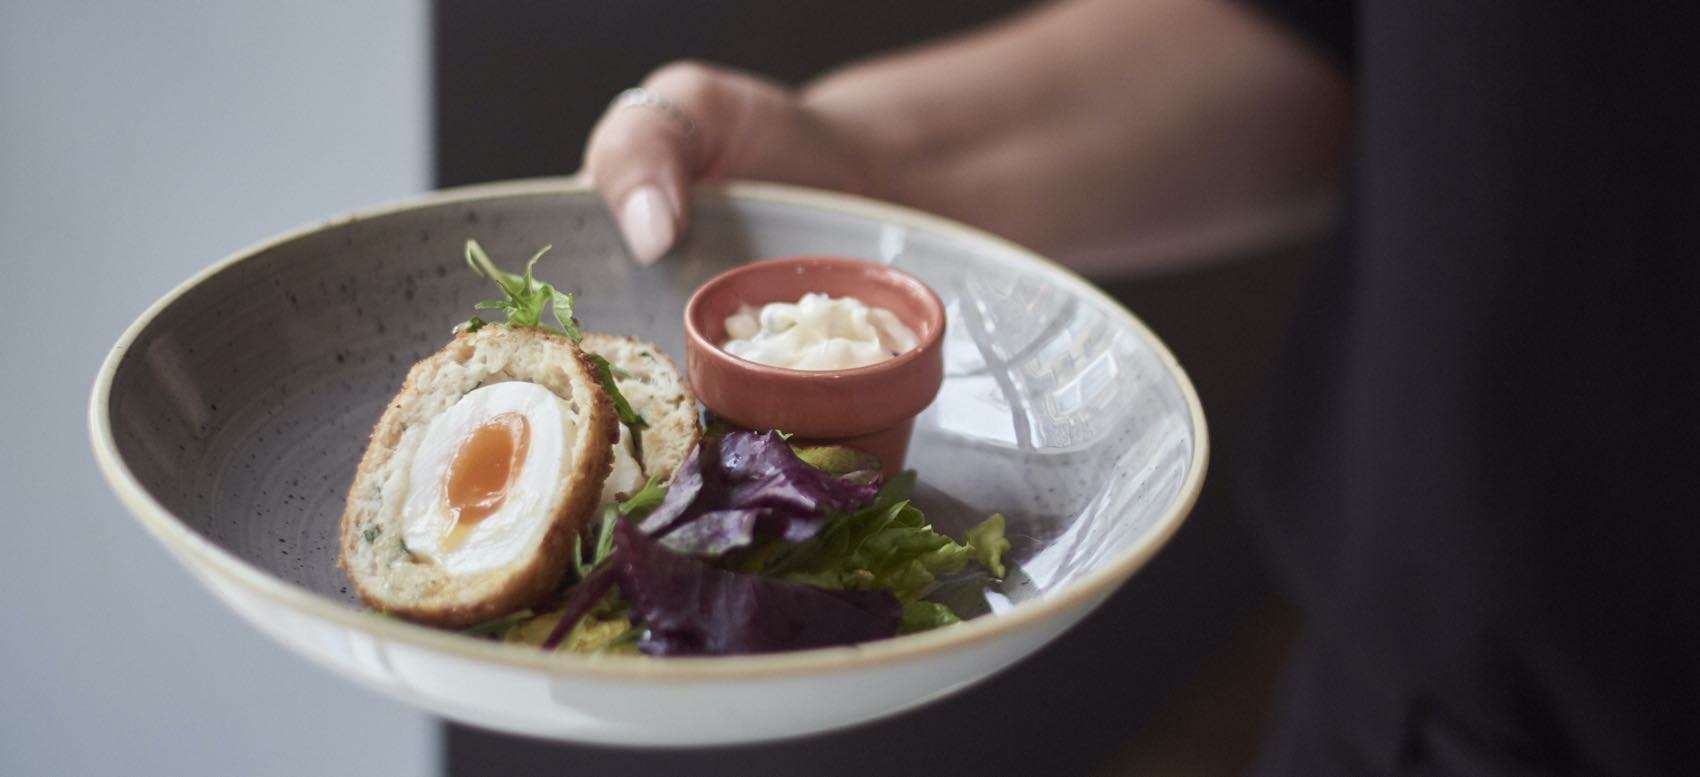 A plate with potted lobster and Scotch Egg at The Potted Lobster, Bamburgh, Northumberland.